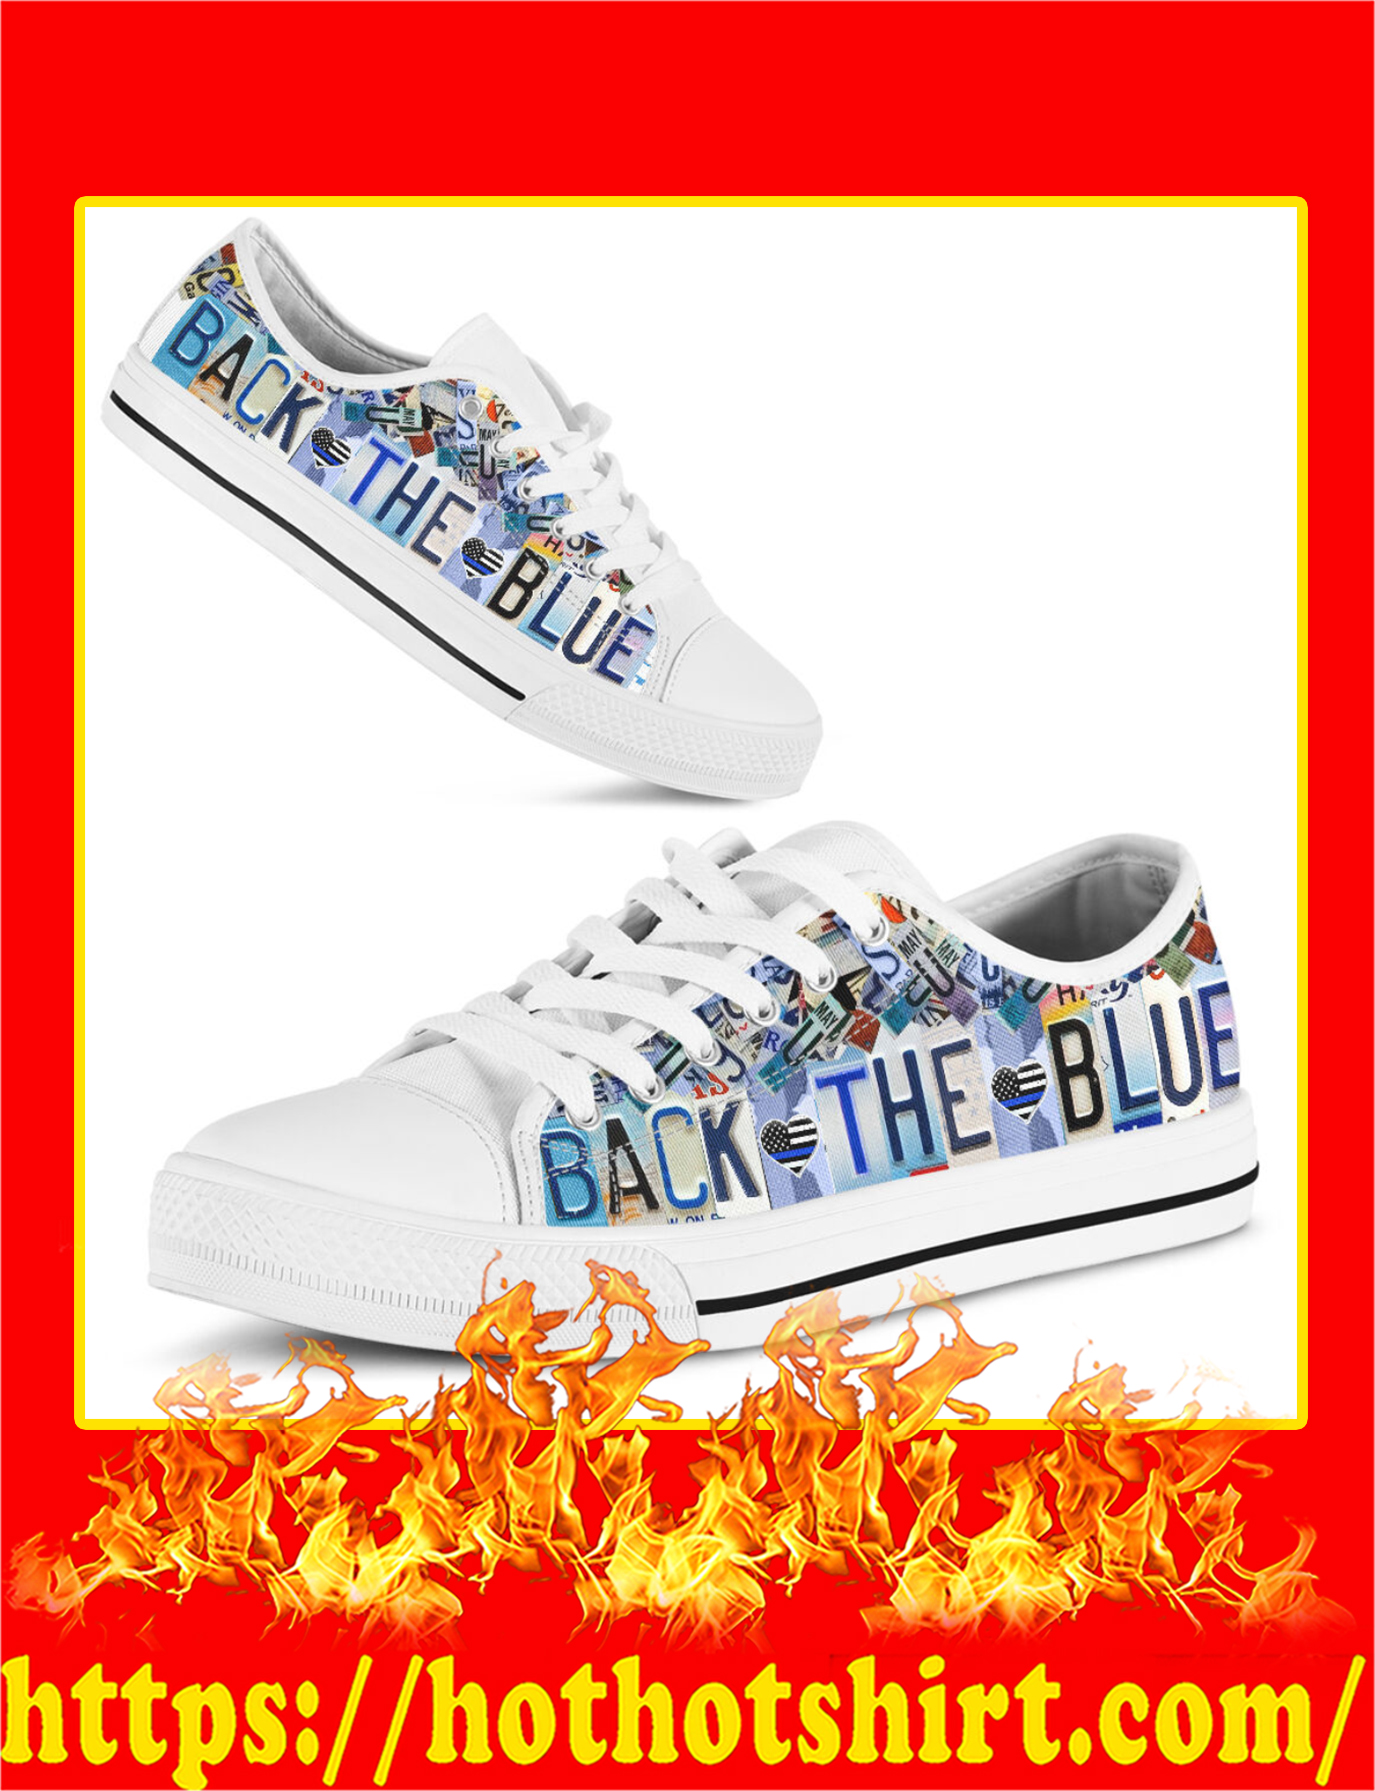 Back The Blue Low Top Shoes - Pic 1